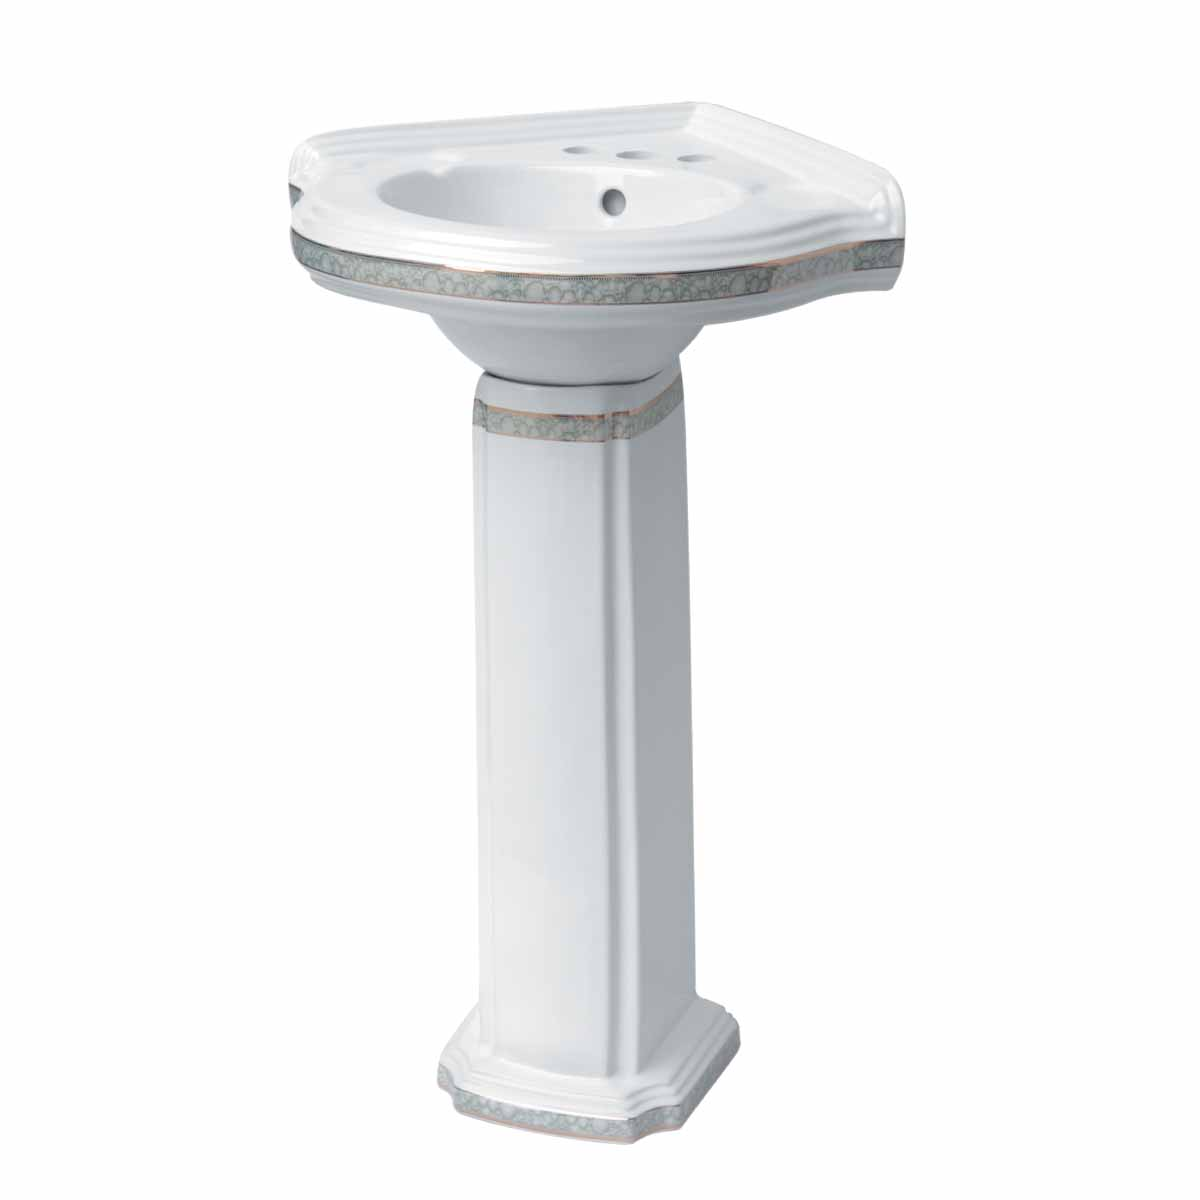 Corner Pedestal Sink Mint Painted White Vitreous China